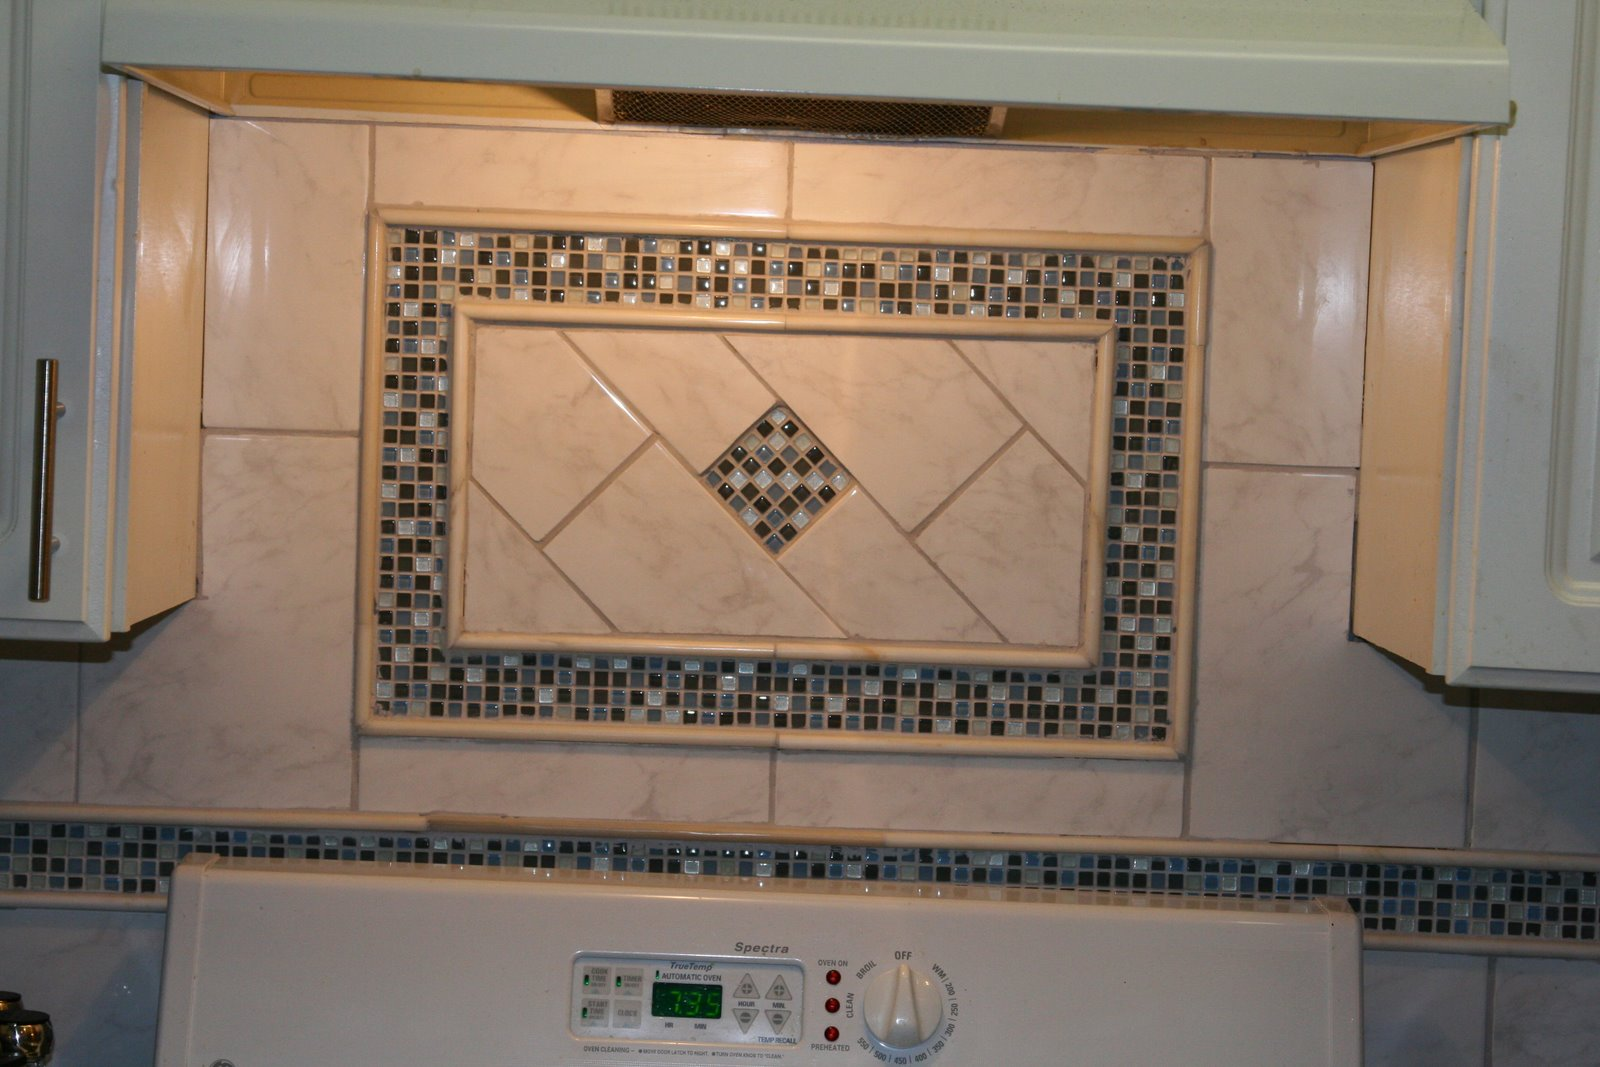 011 Need Help With Kitchen Backslash. What Do You Think Of This Tile? 021